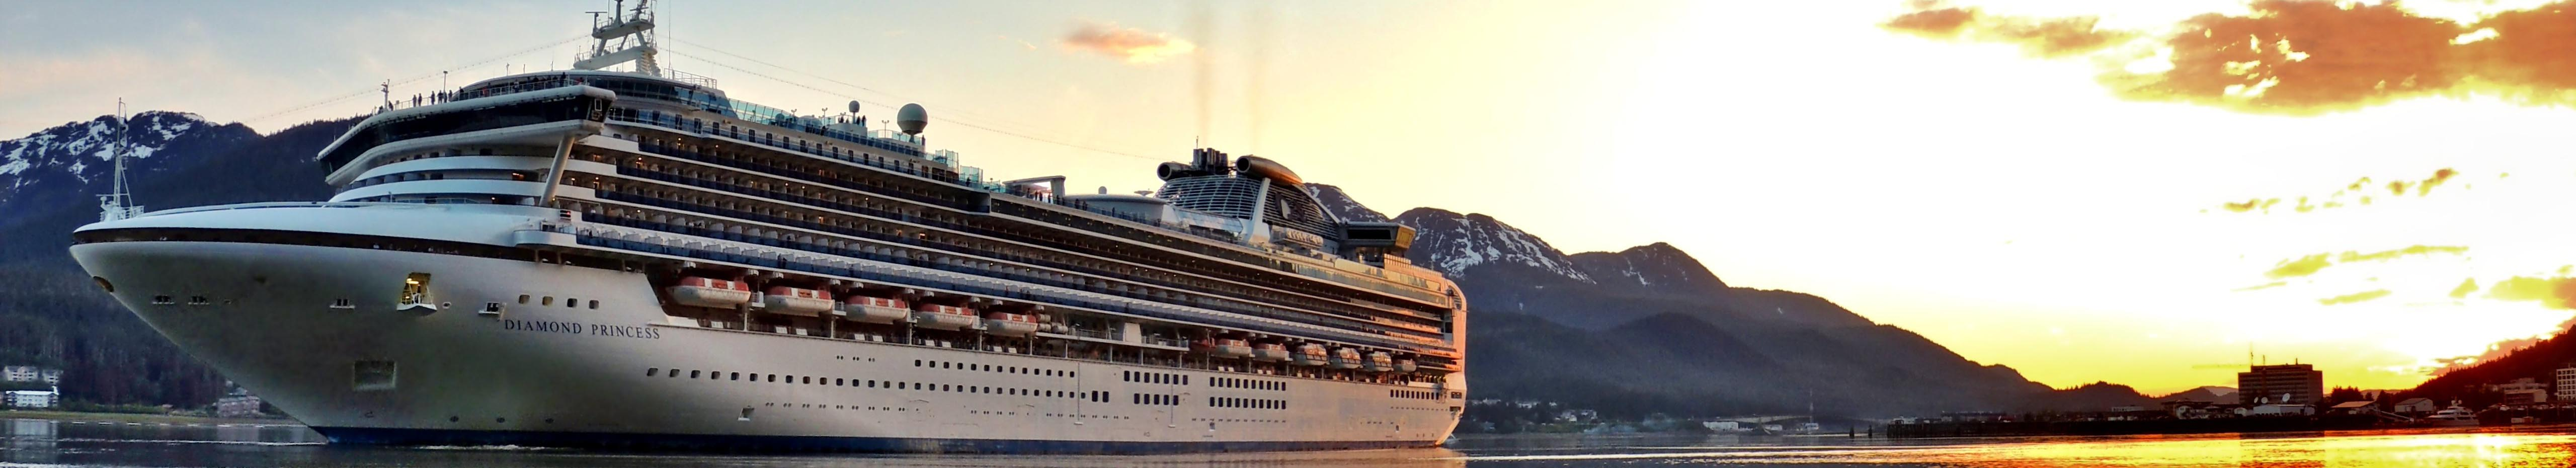 Вся Япония в круизе <br> Diamond Princess (Princess Cruises)